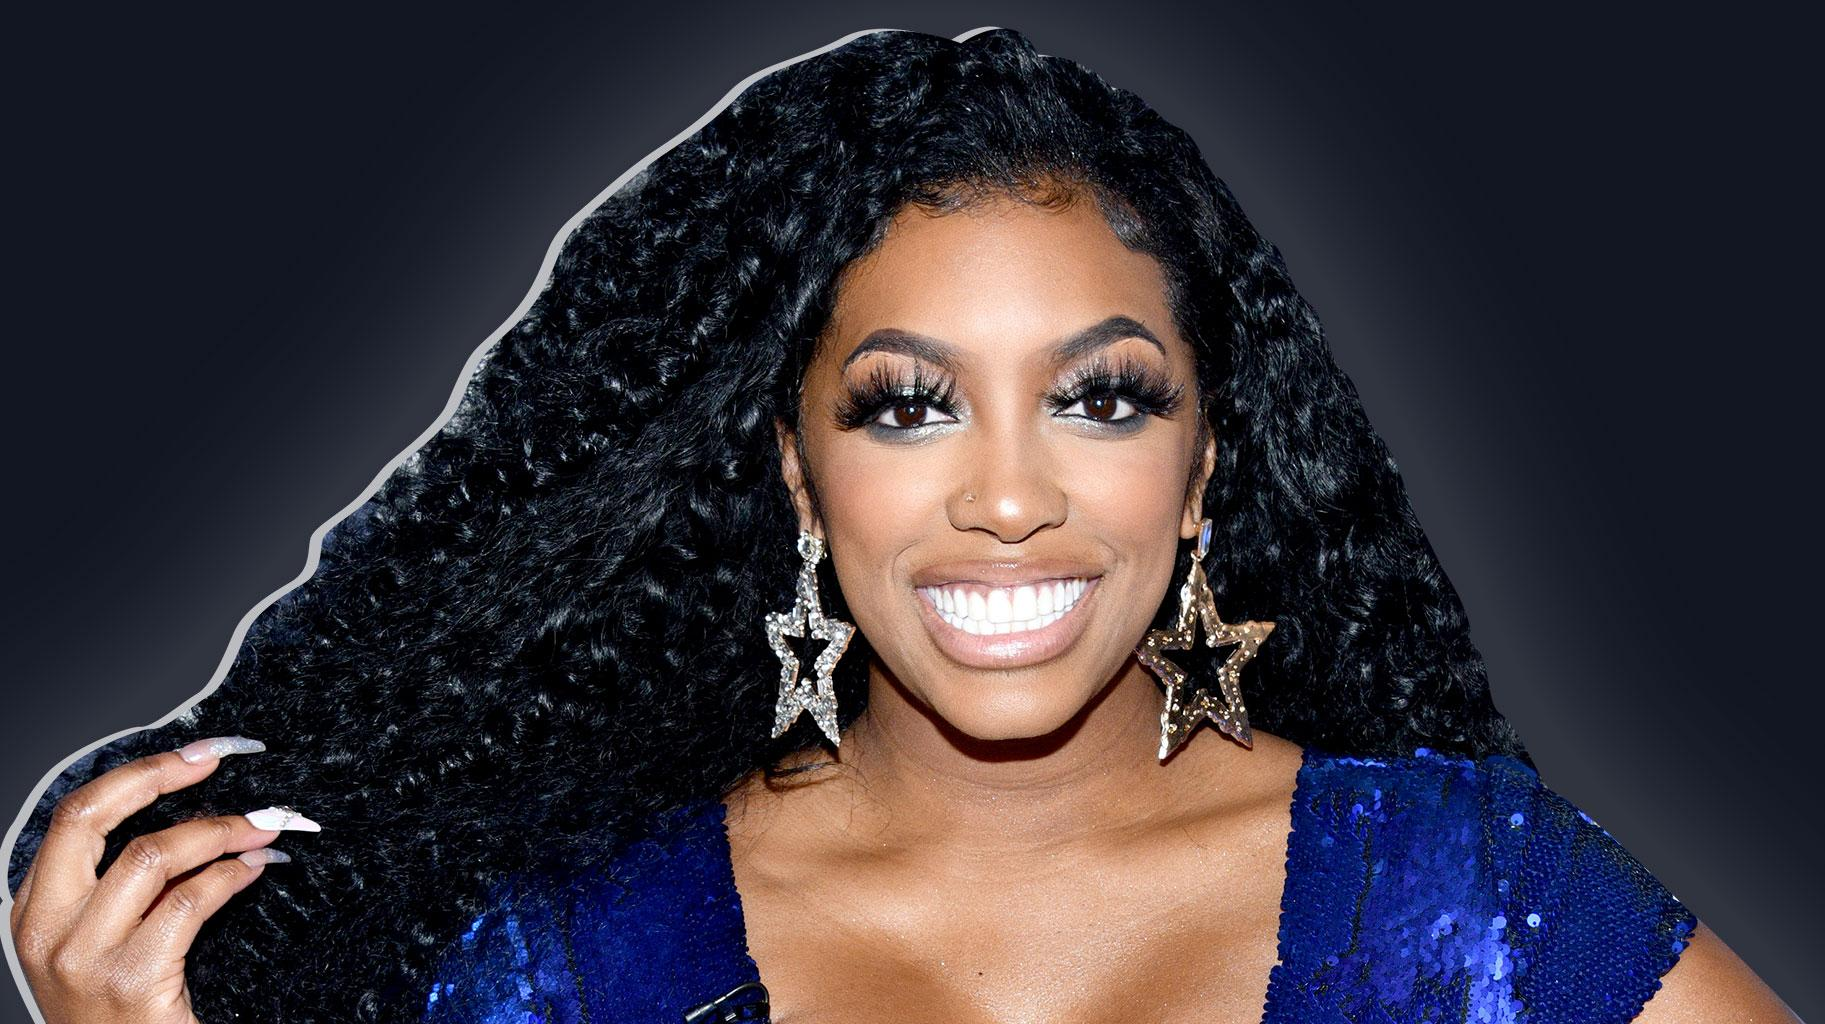 Porsha Williams Is Still Sad That She Didn't Turn Up With Her Crew At The Carnival - See The Videos She Posted